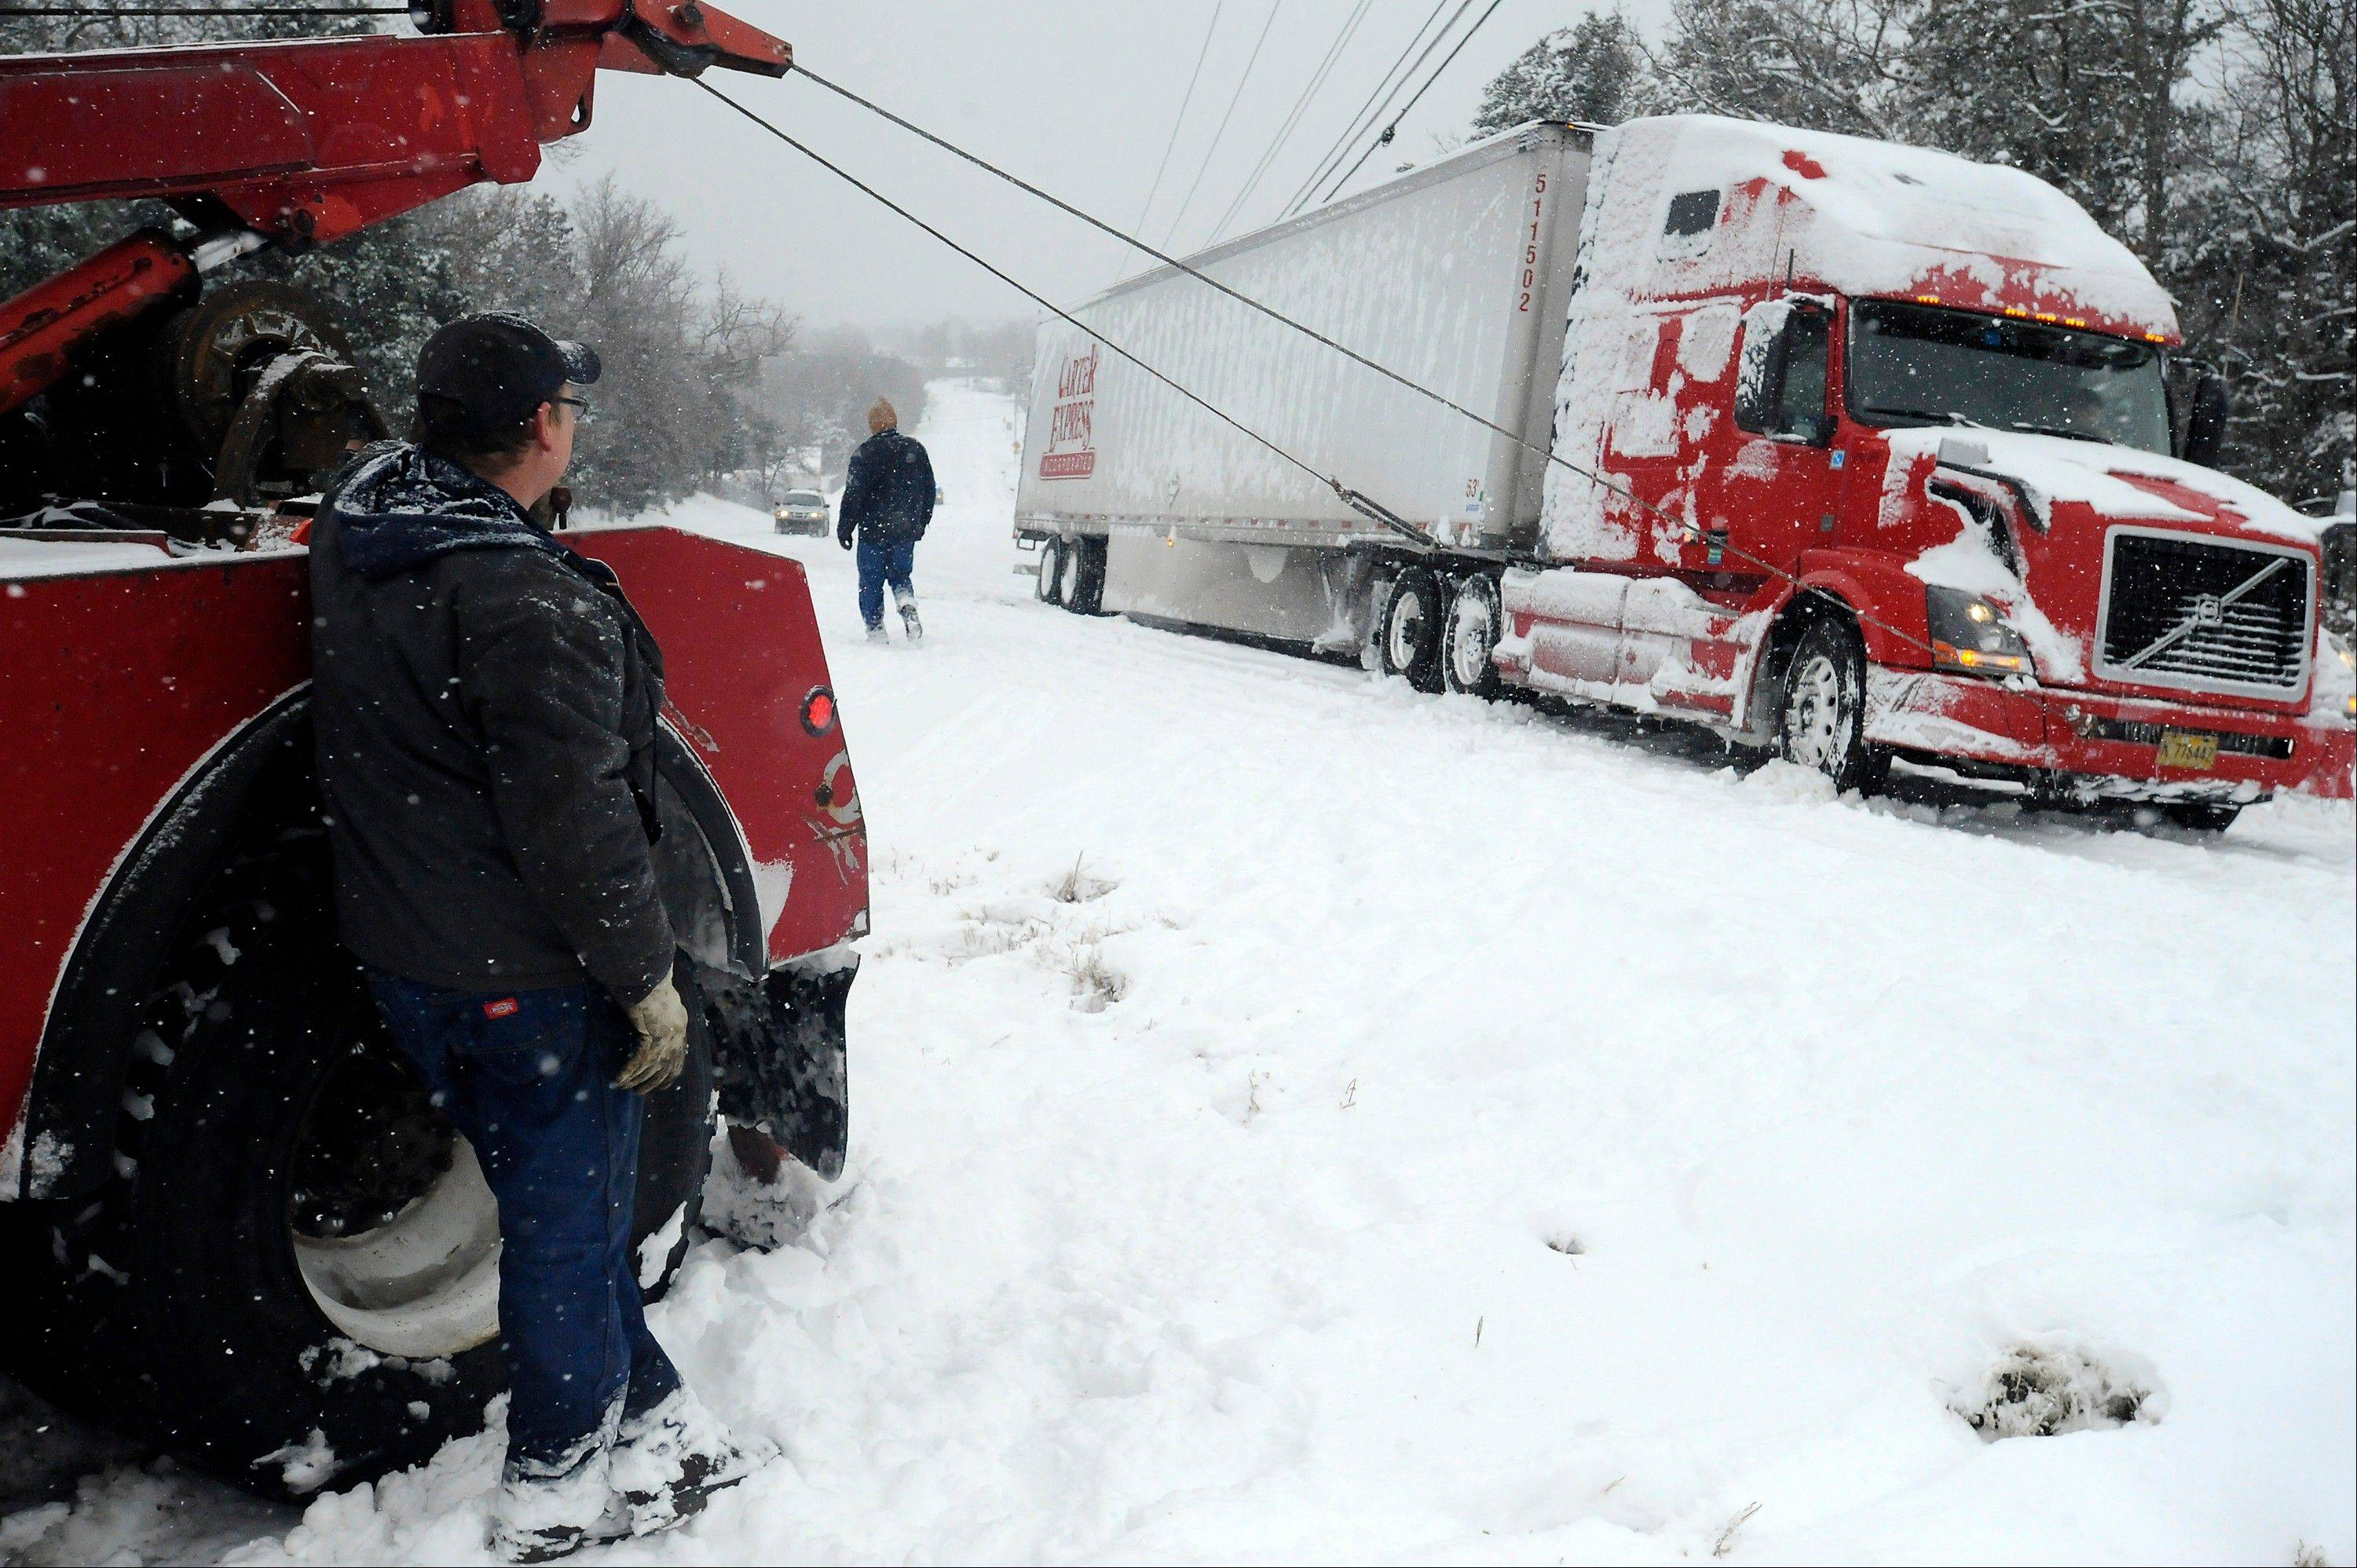 Jim Dobbs, left, helps pull a tractor trailer rig out of a ditch Friday in Henderson, Ark.